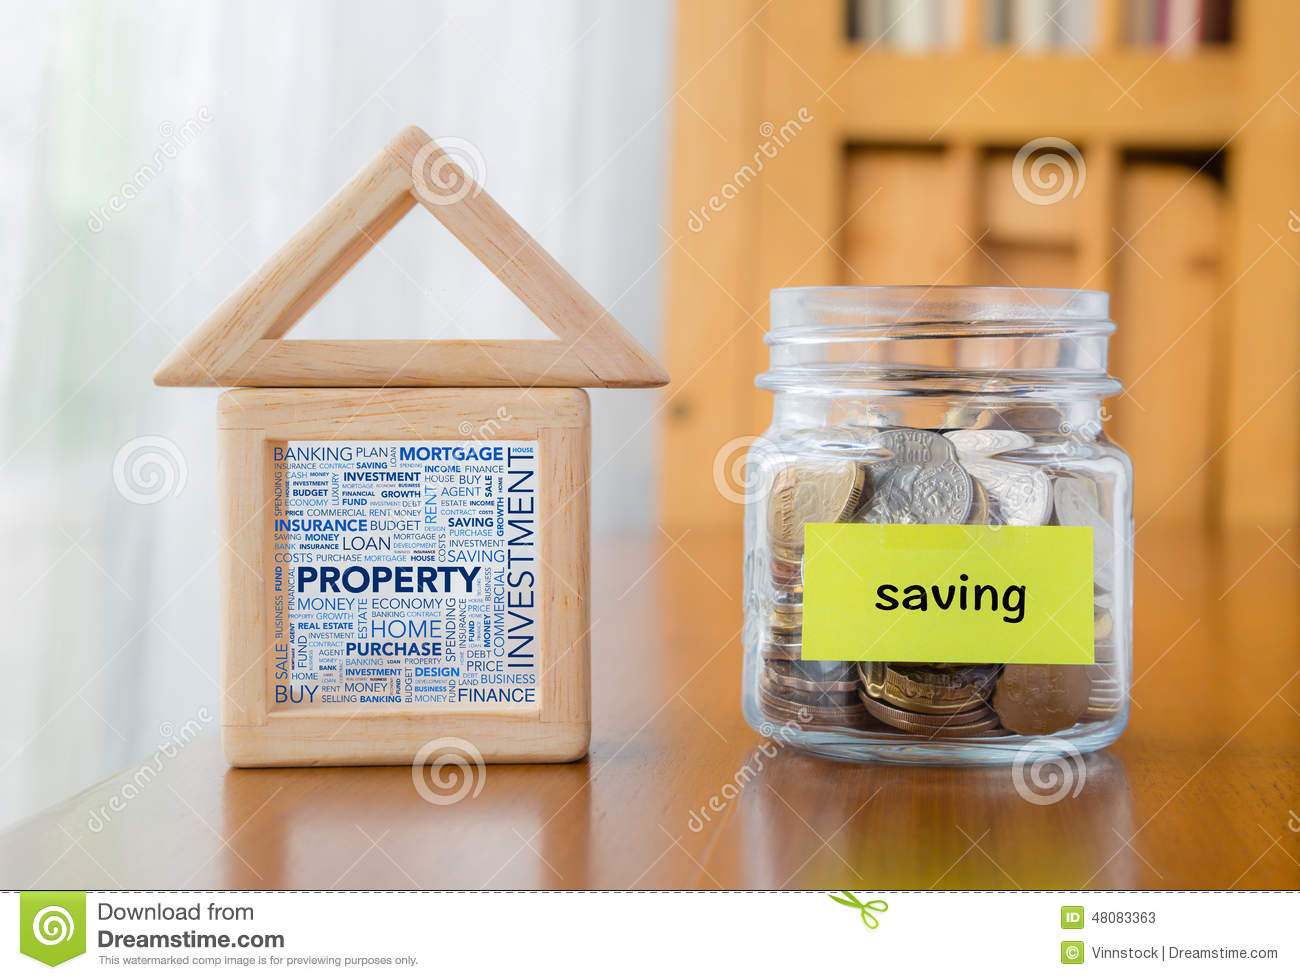 how to make money from property investment